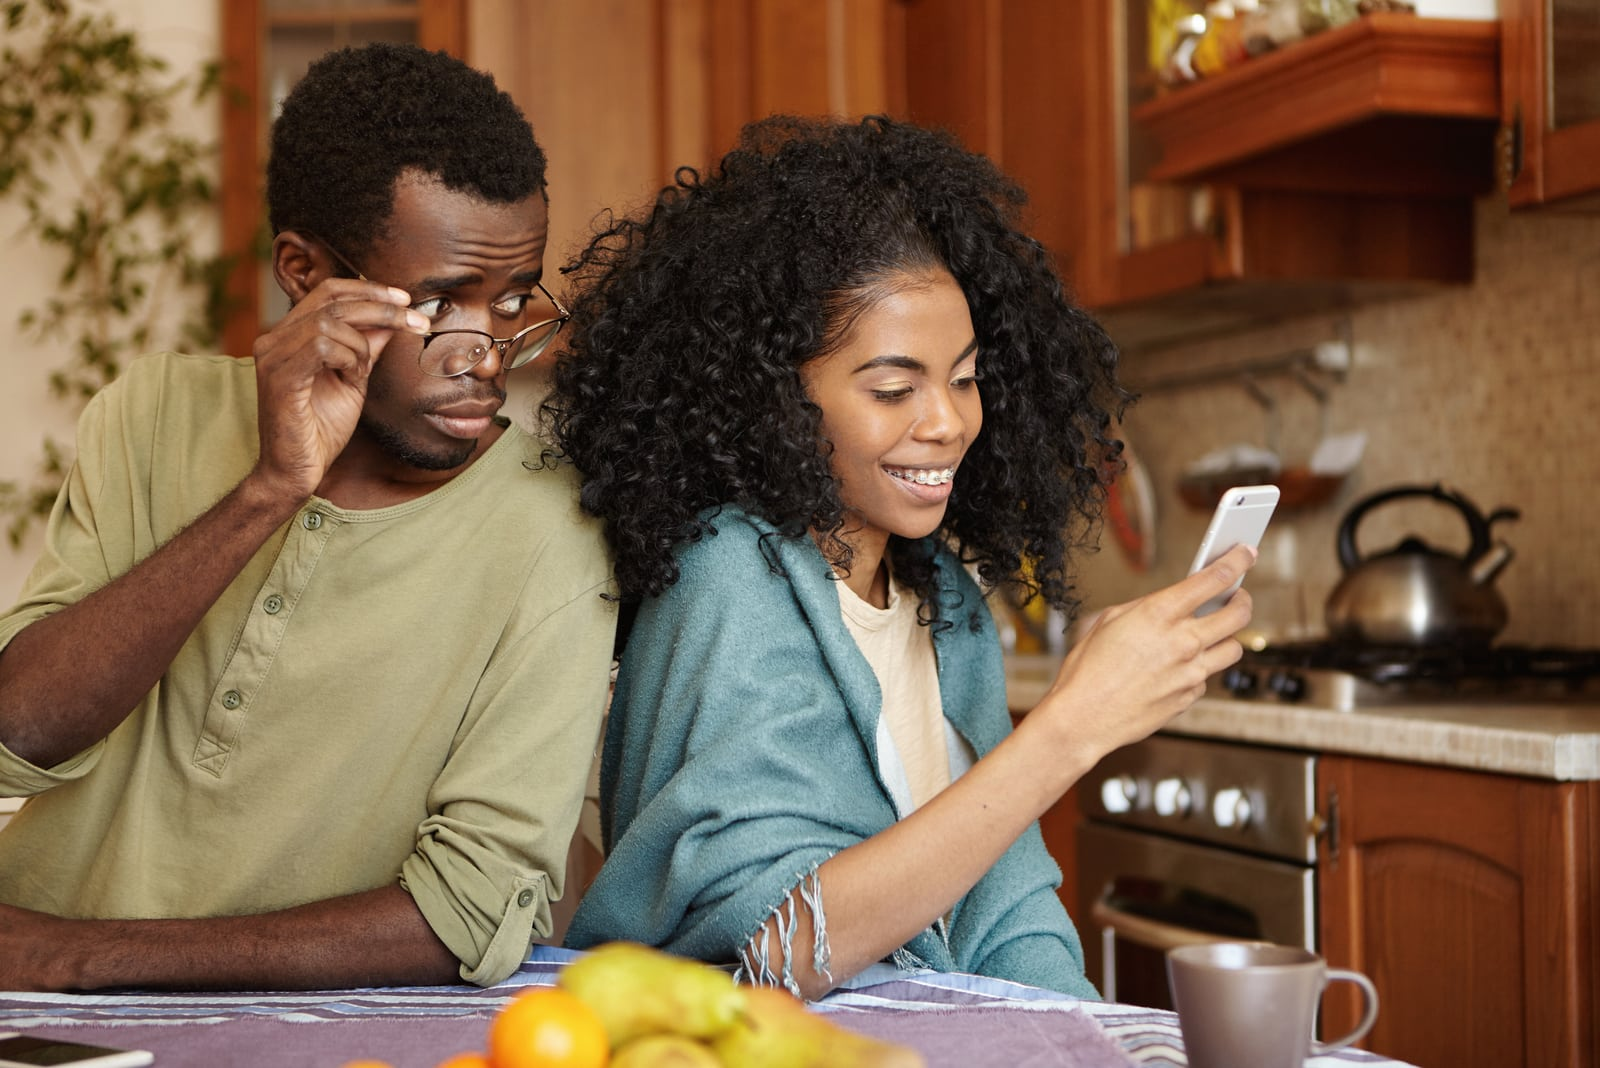 a jealous black man peeks into the contents of his wife's smartphone